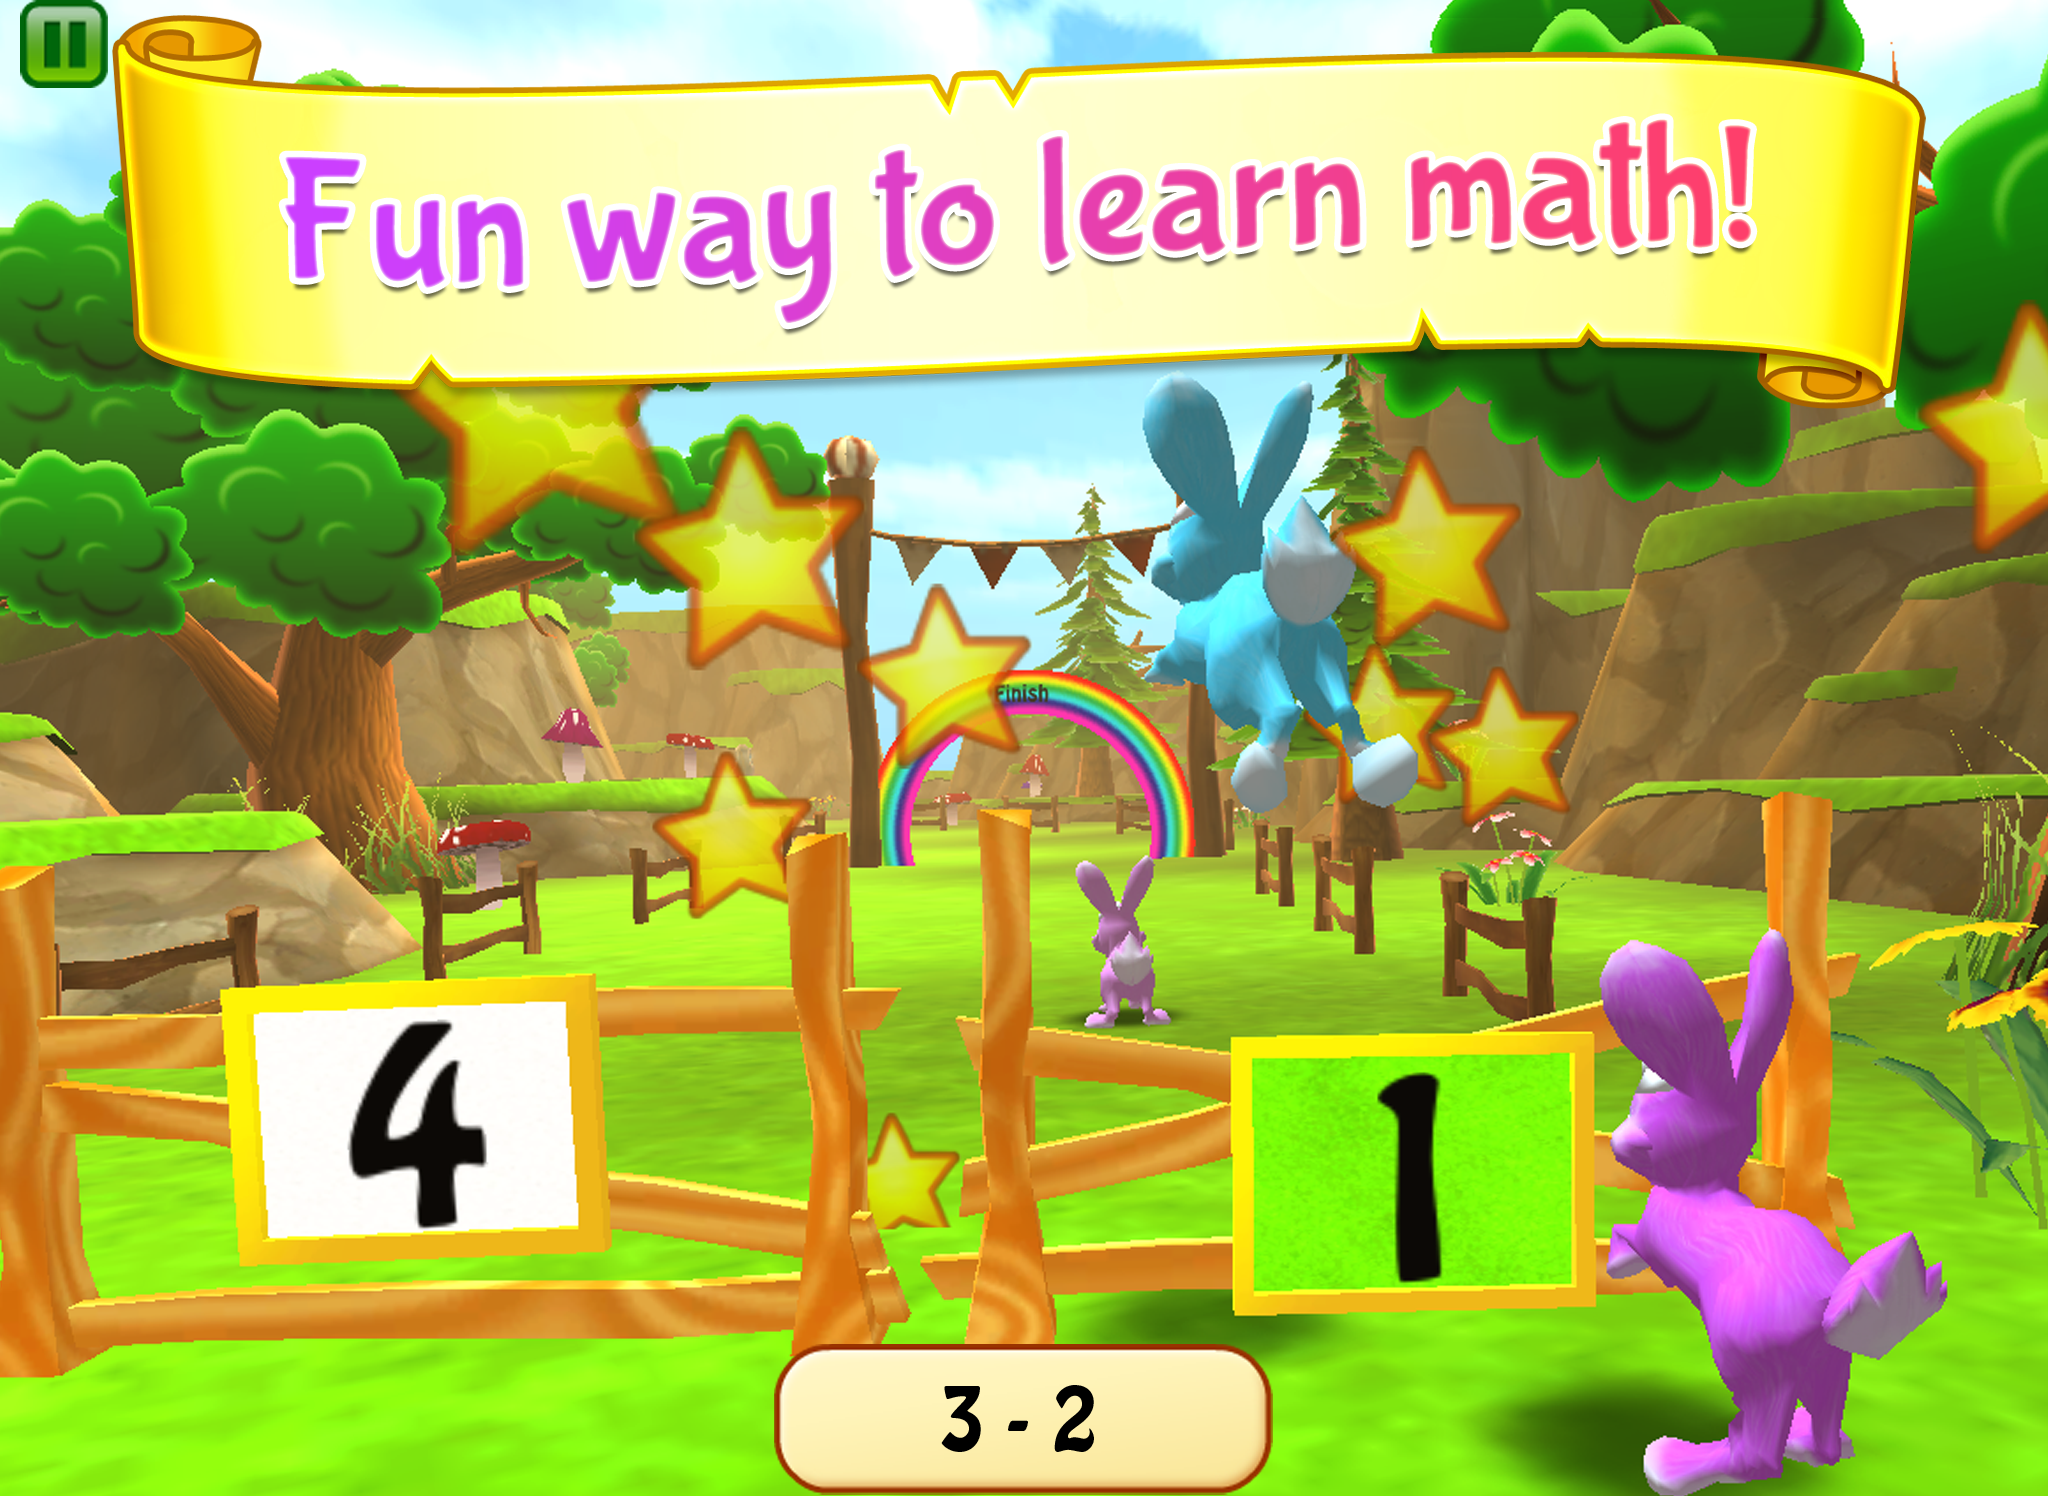 Educational Summer Fun Bunny Math Race Game for 3 8 Year Old Kids